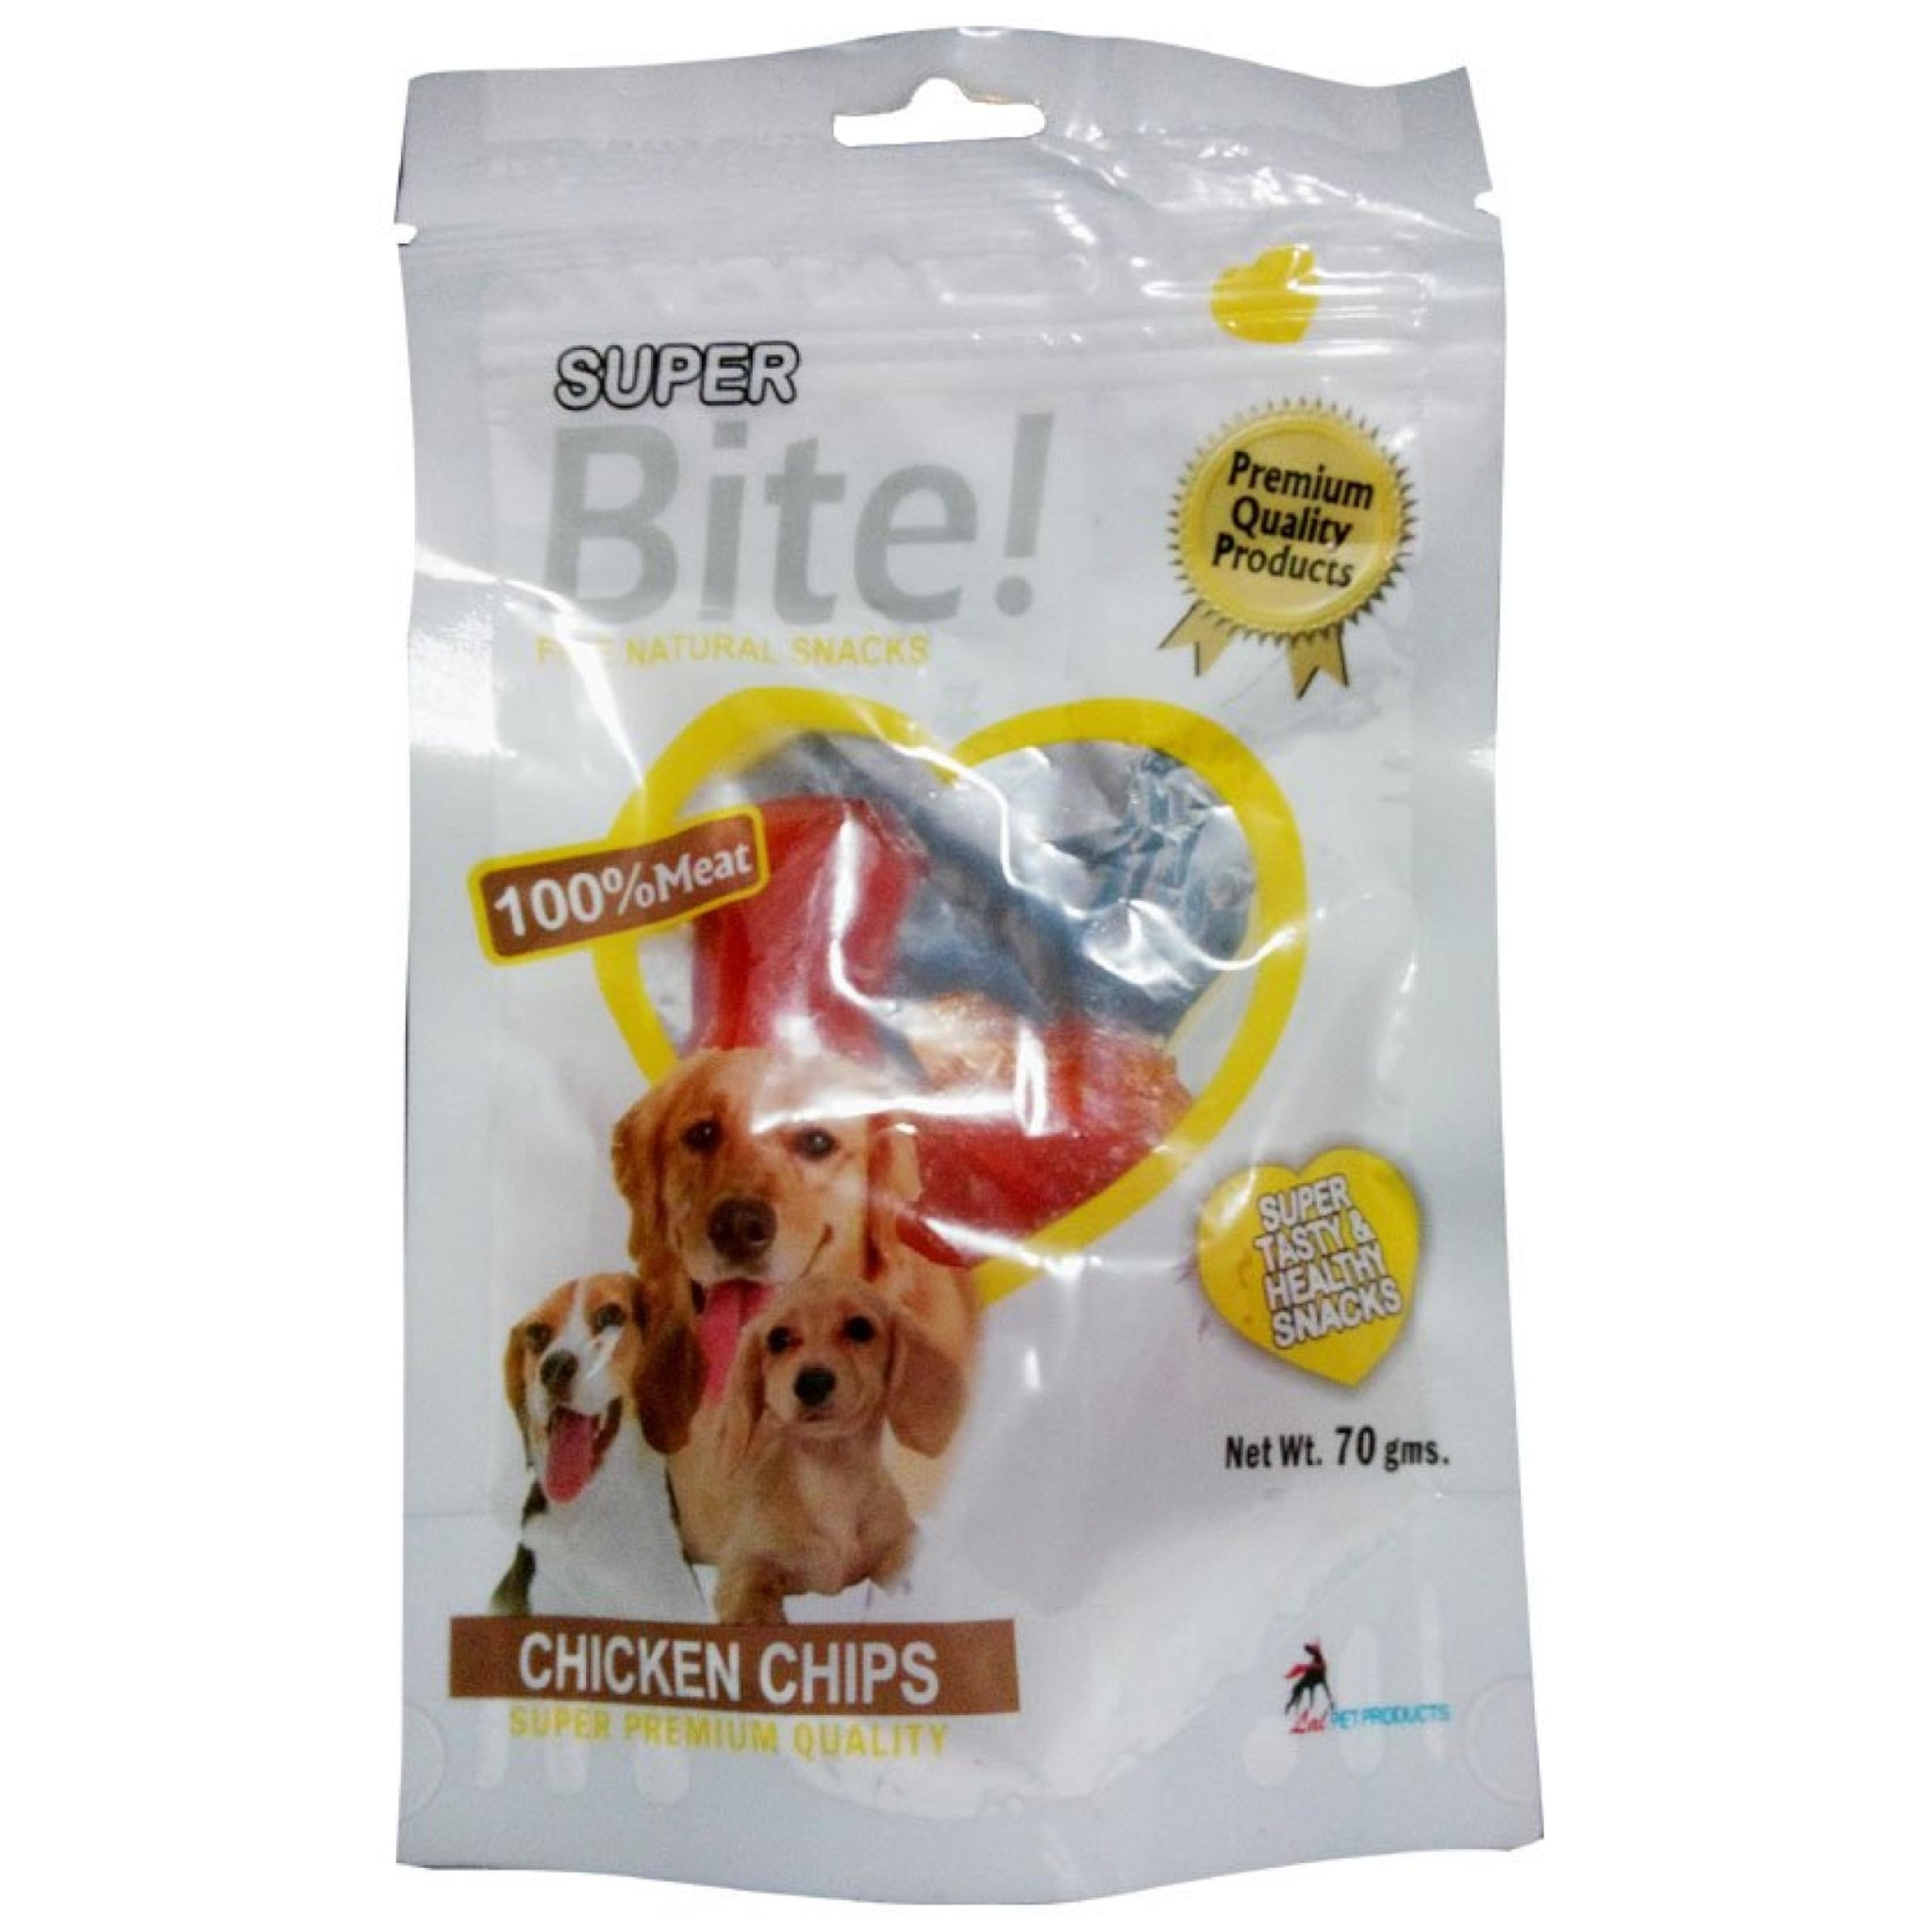 Superbite Dog Chicken Chips Chew Treats 70gms - Poochles